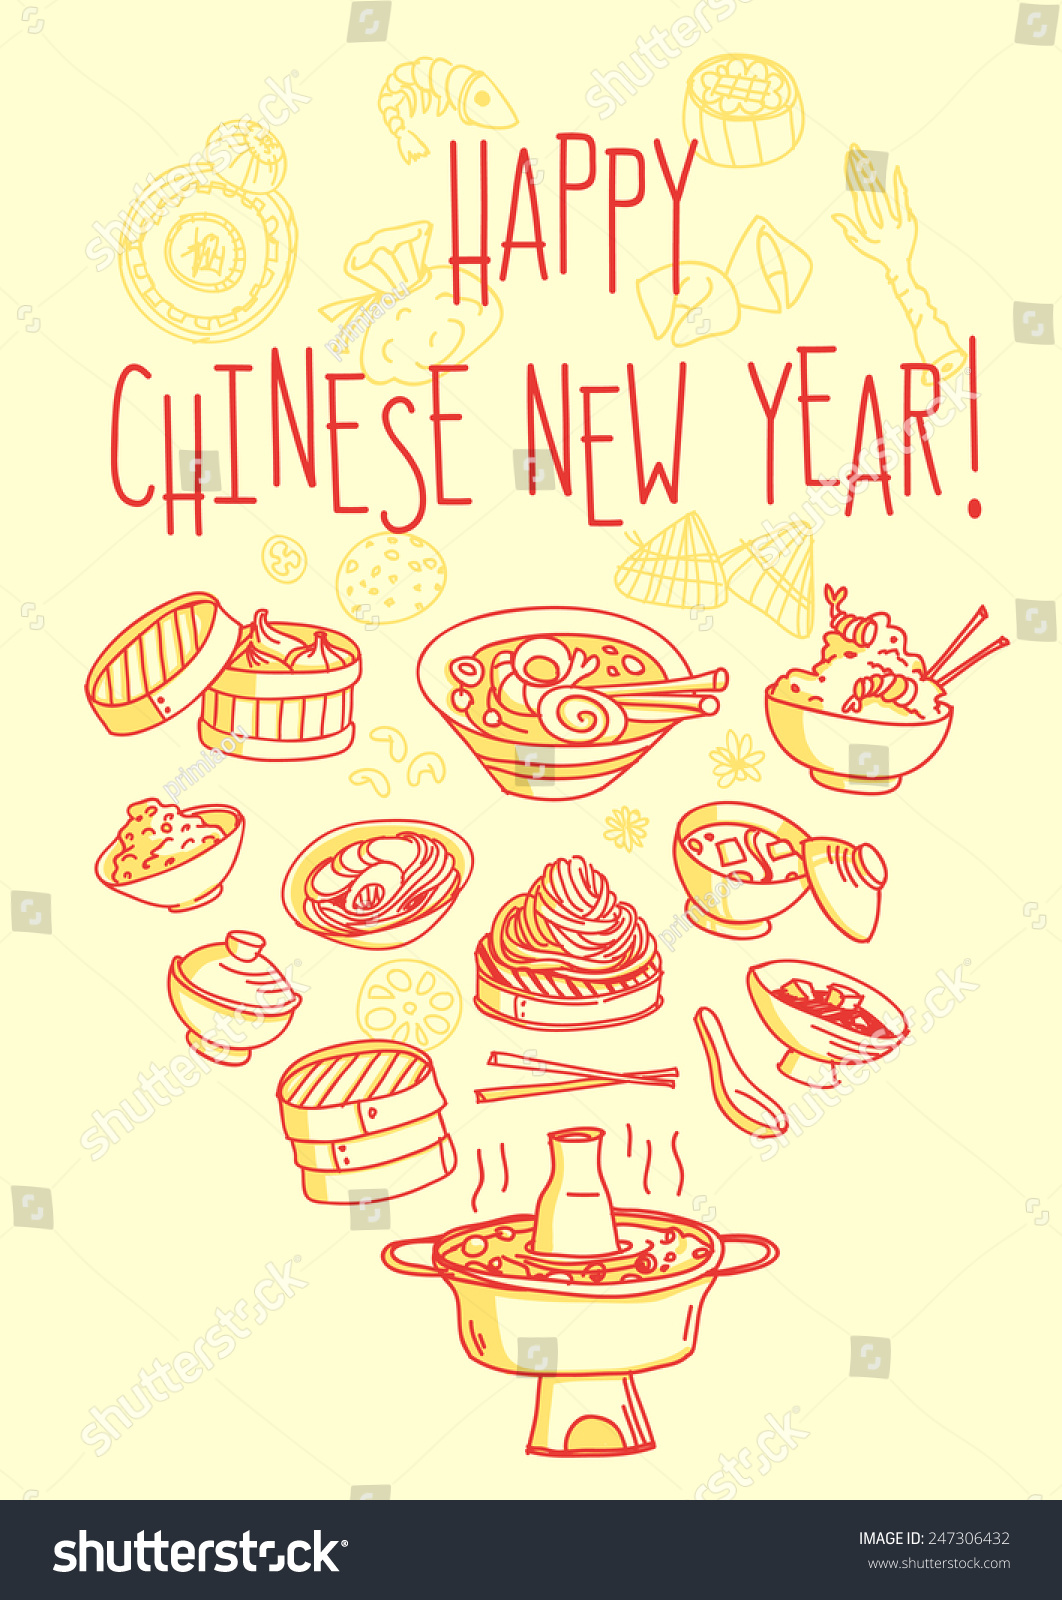 Happy Chinese New Year Food Themed Stock Vector 247306432 Shutterstock